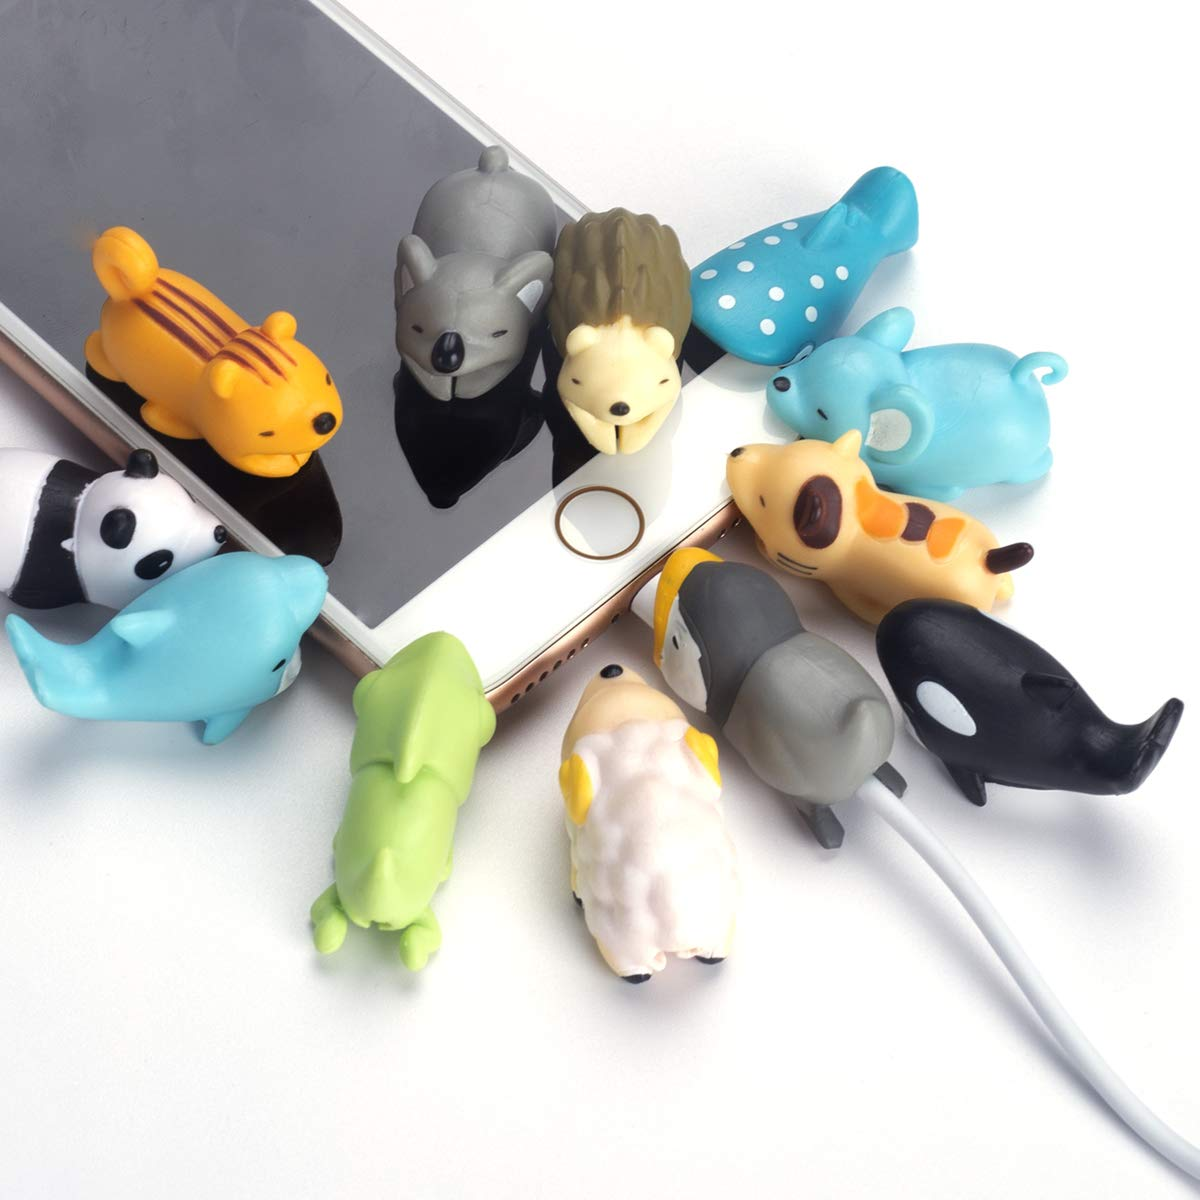 Aitsite 12 Pieces Charger Cable Protector Buddies, Cord Protector Saver with Carry Case and Animals Cable Bites for iPhone and Android Cell Phone Charging Cable by Aitsite (Image #7)